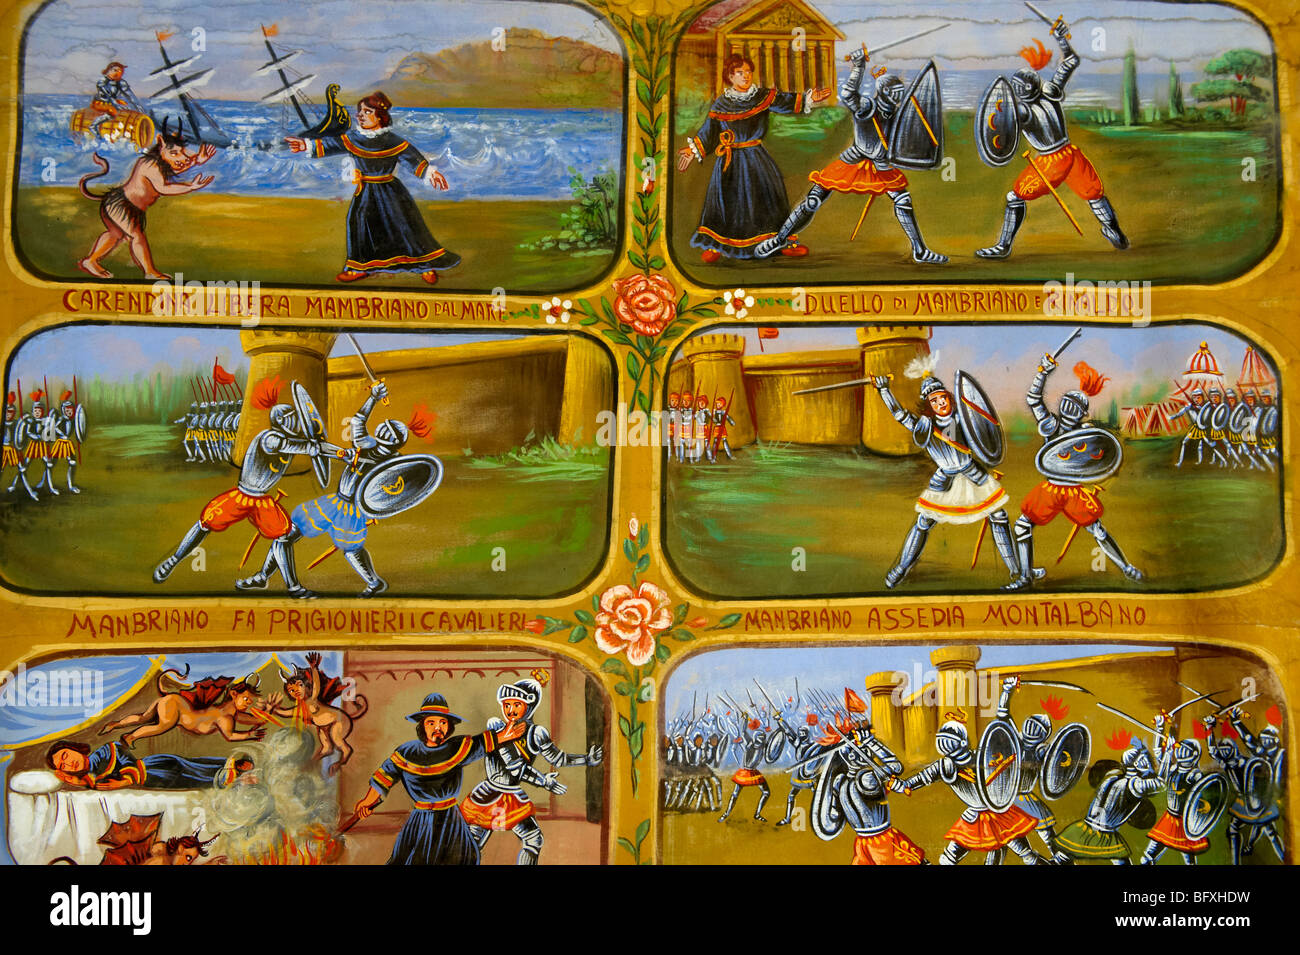 Folk art paintings depicting Sicilian historical stories, Palermo Pupet museum, Sicily - Stock Image